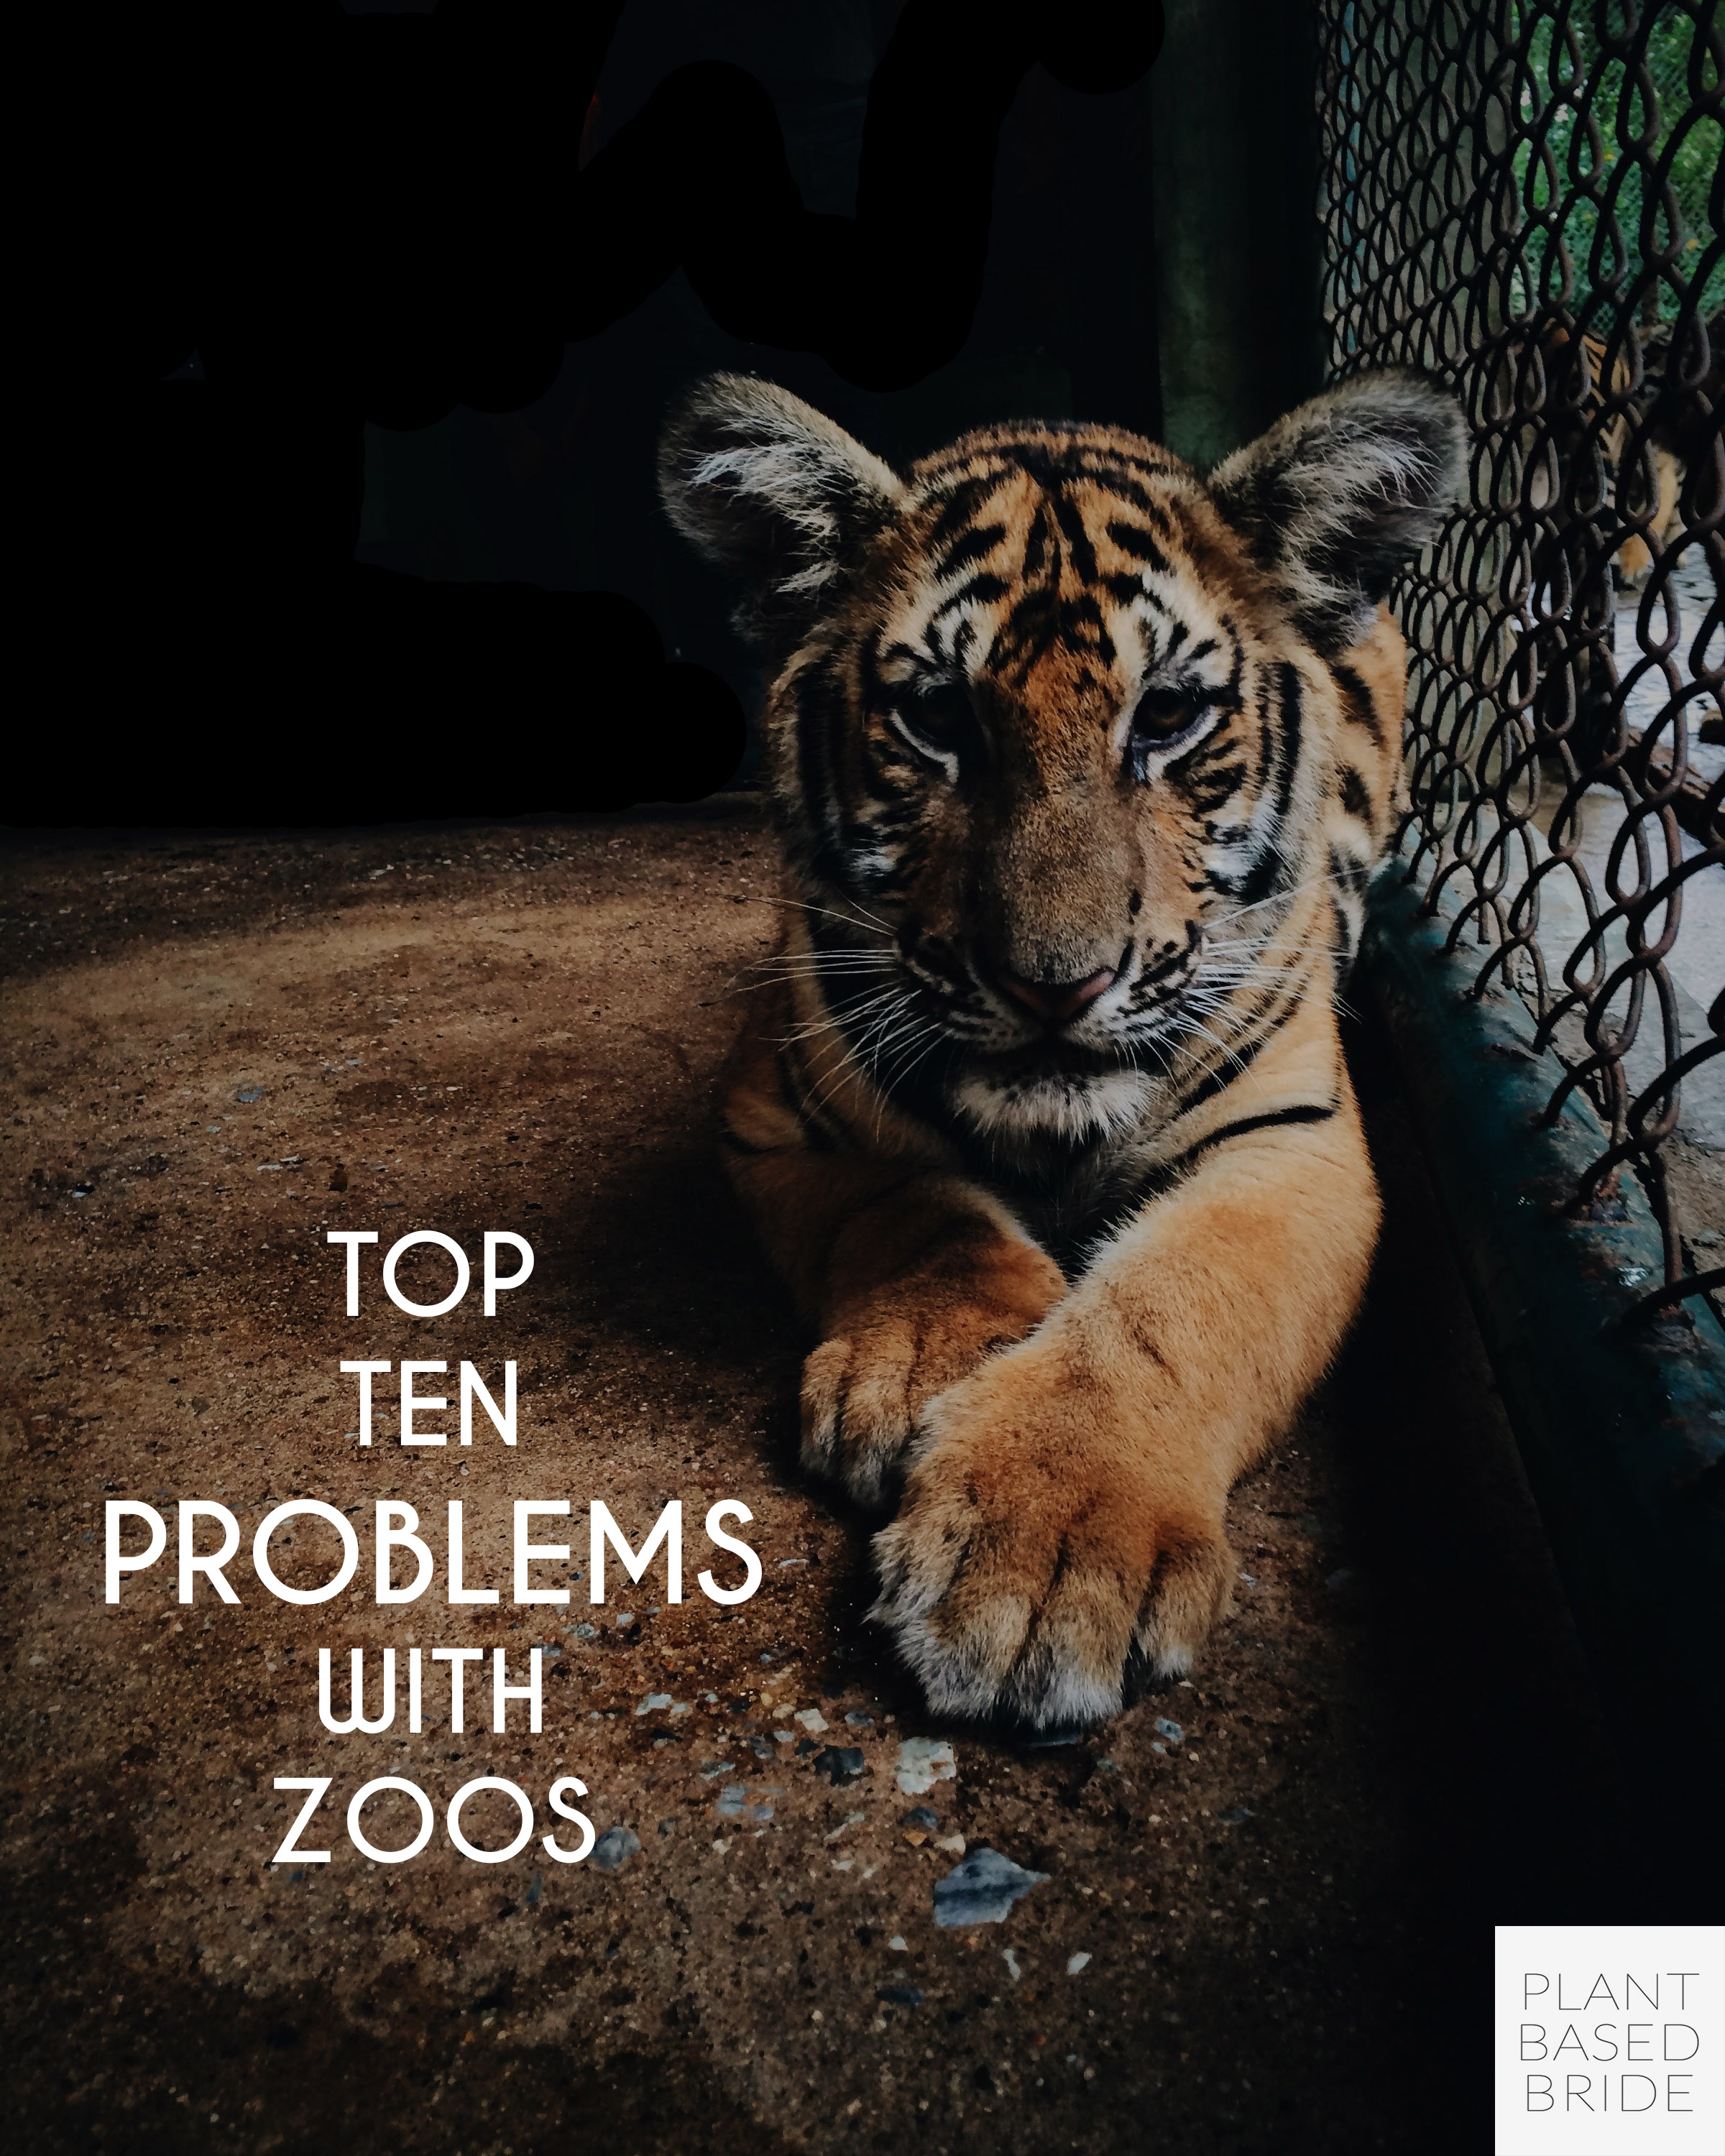 Zoos aren't all they're cracked up to be... learn the top ten problems with zoos and choose a more compassionate way to appreciate wild animals! // Plant Based Bride